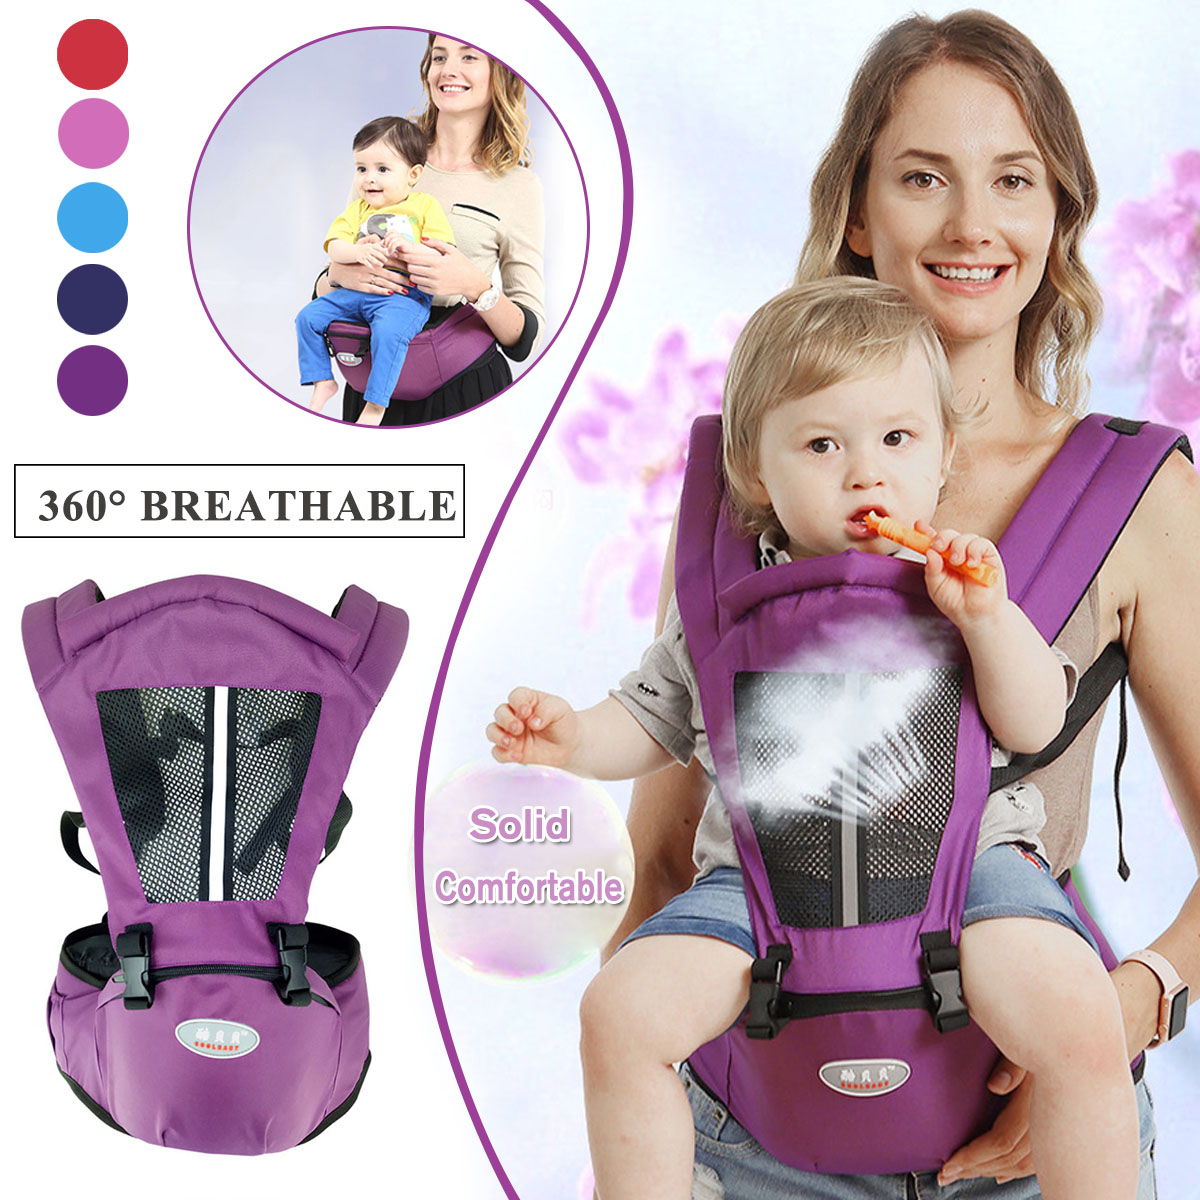 Newborn Baby Carrier Kangaroo Toddler Sling Wrap Portable Infant Hipseat Baby Care Waist Stool Adjustable Hip Seat 0 36 Months|Backpacks & Carriers| |  - title=